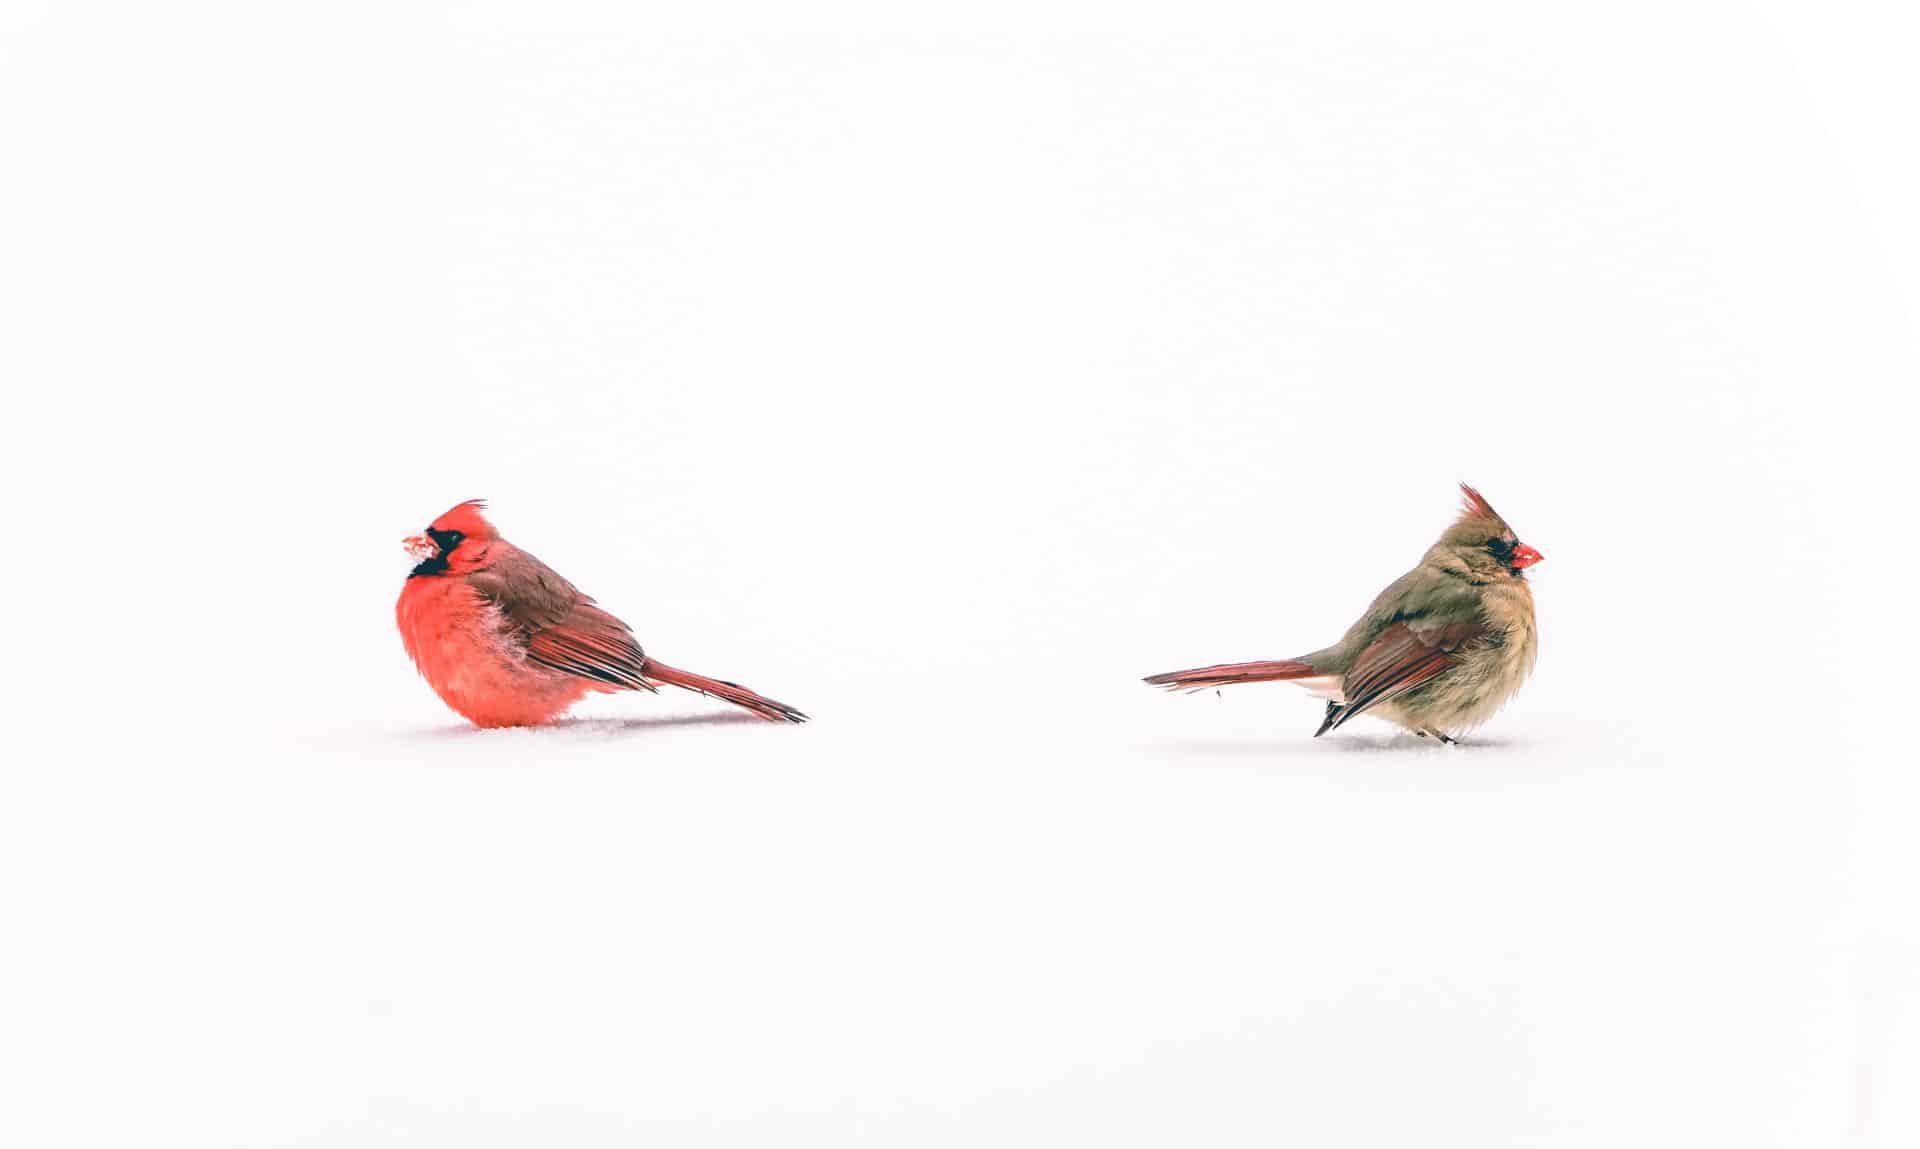 Male and female cardinal in the snow with their backs to each other